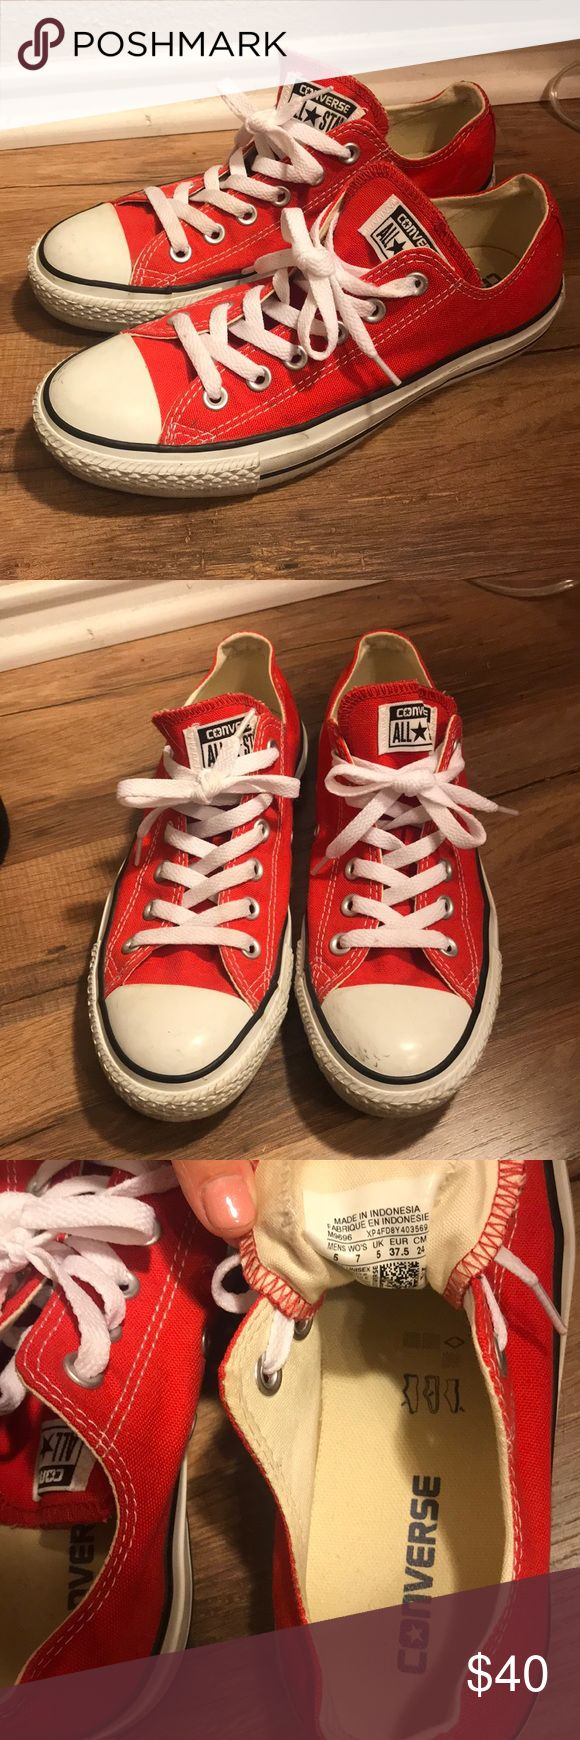 Women's Red Converse Women's size 7, Men's size 5.  Good condition, only worn a few times! Converse Shoes Sneakers